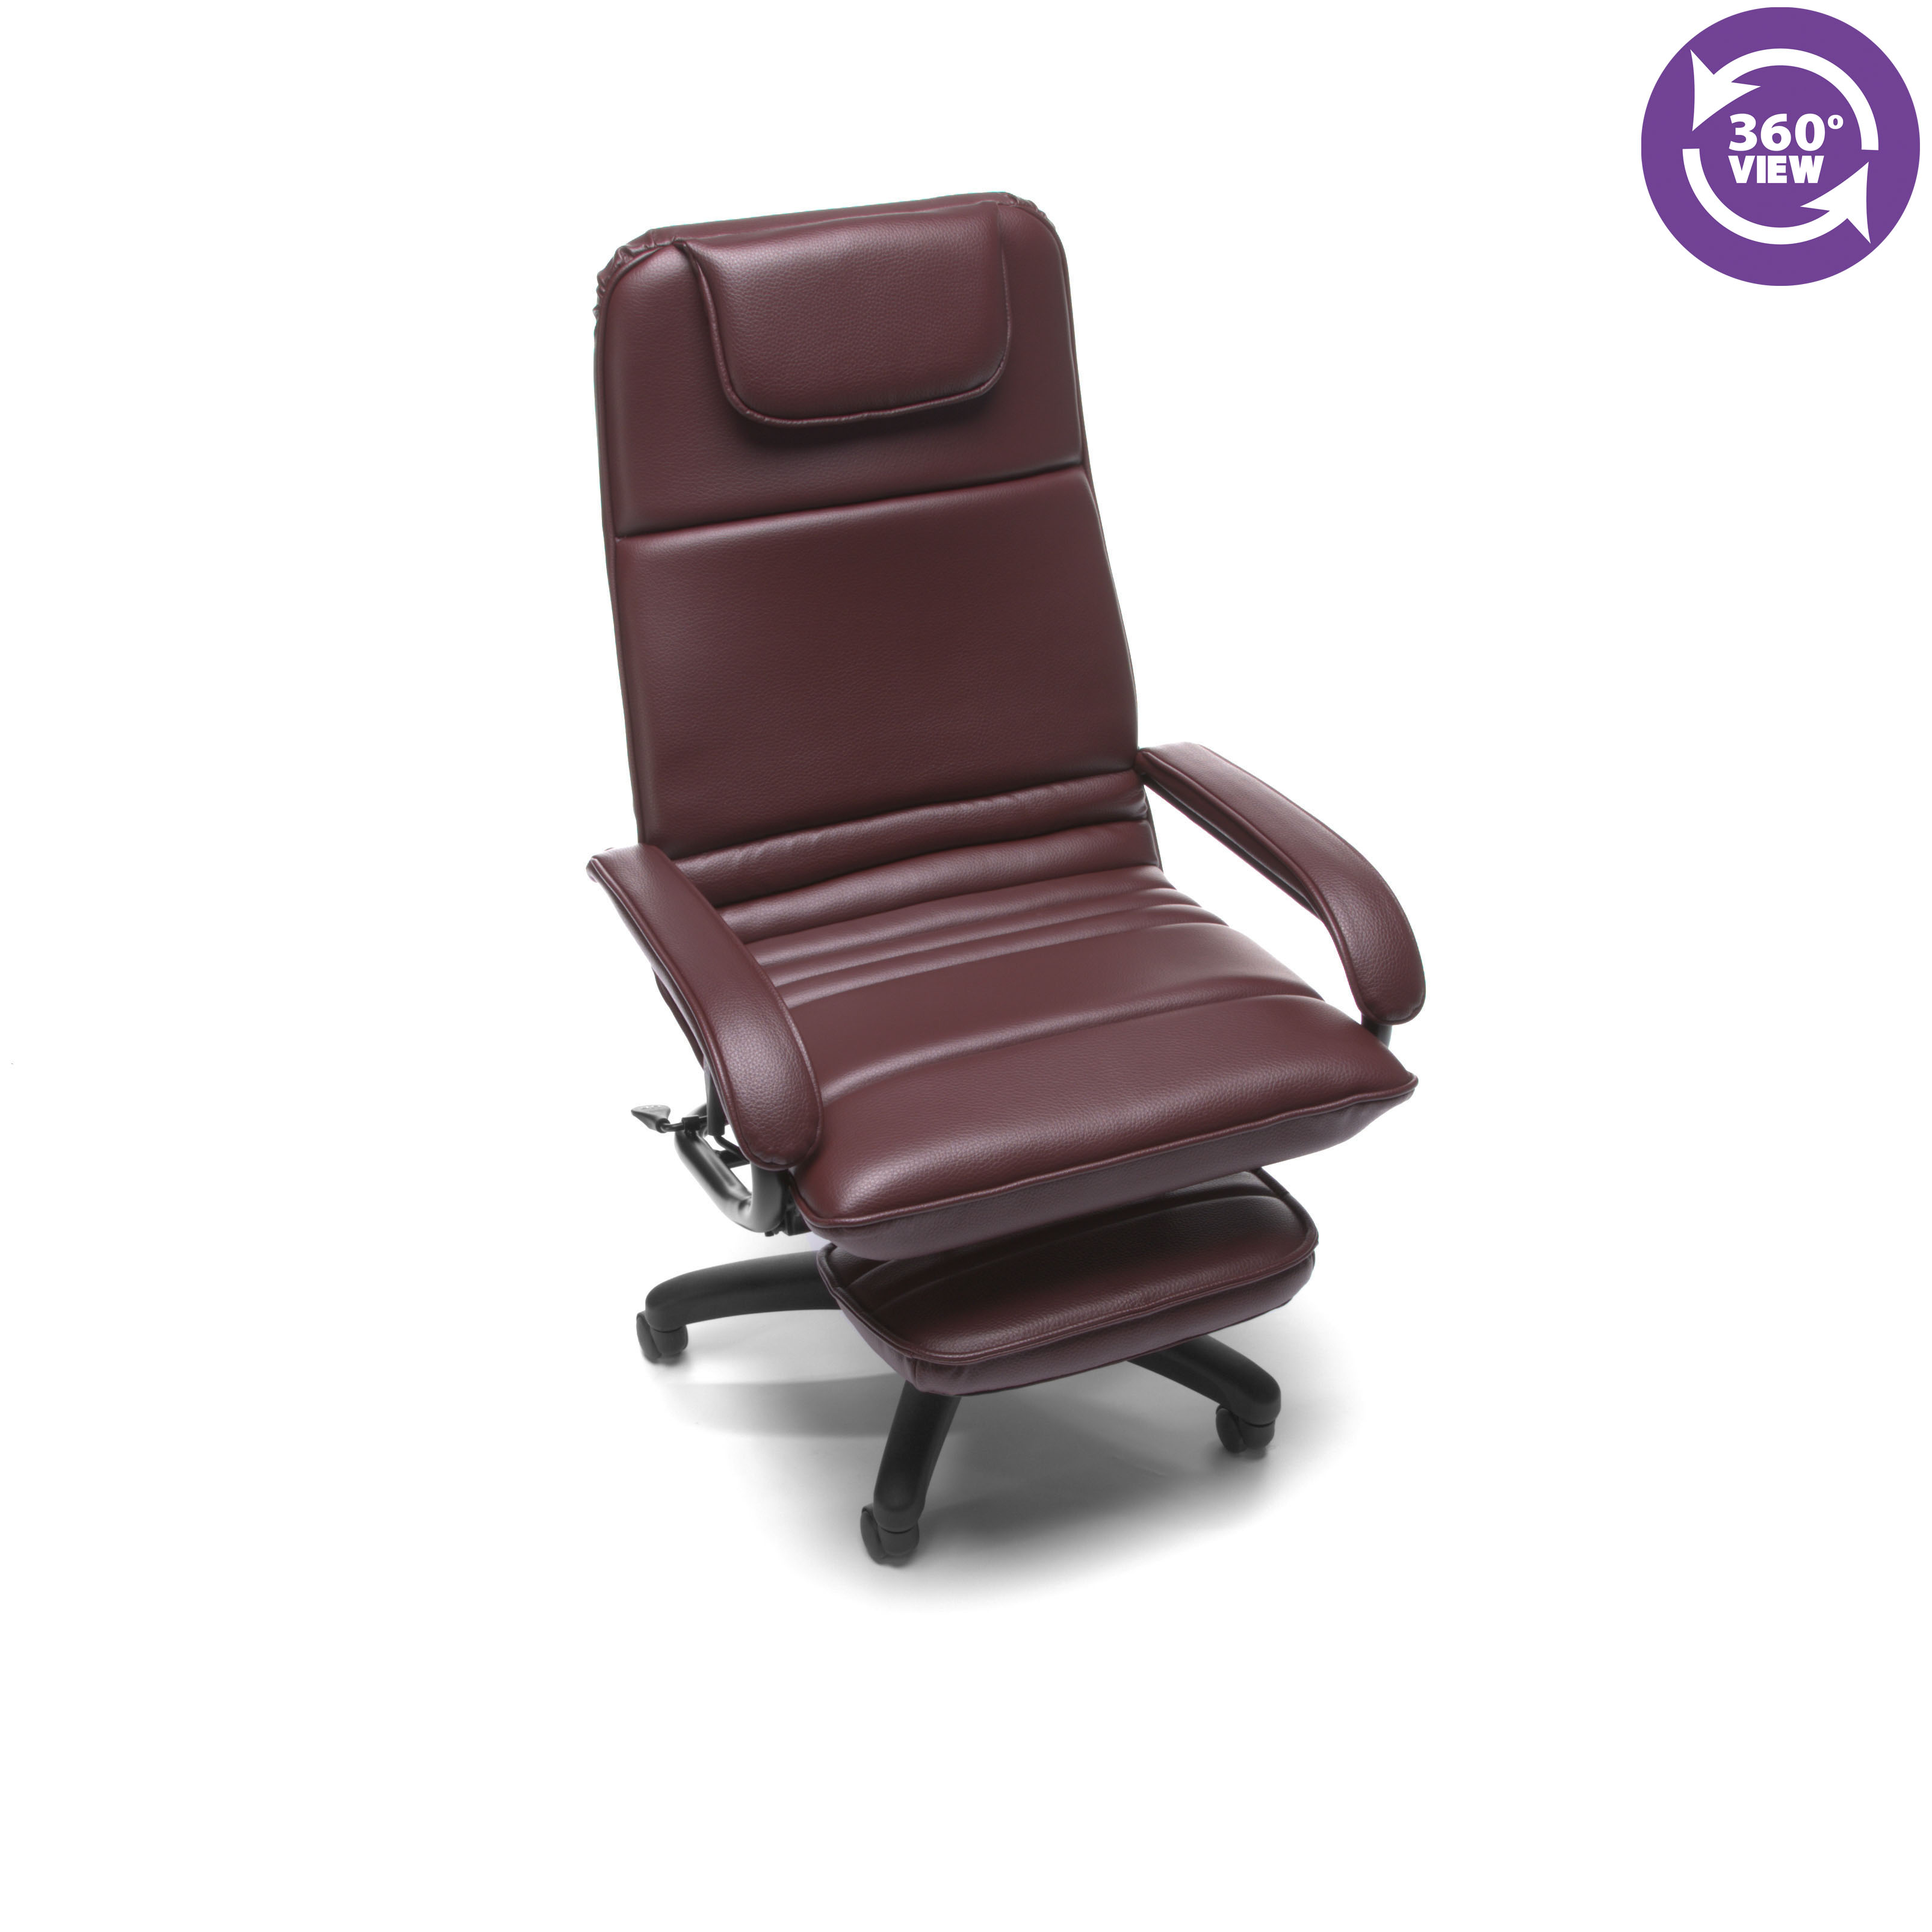 sc 1 st  Hertz Furniture & Power Rest Executive Recliner OFM-680 Executive Office Chairs islam-shia.org